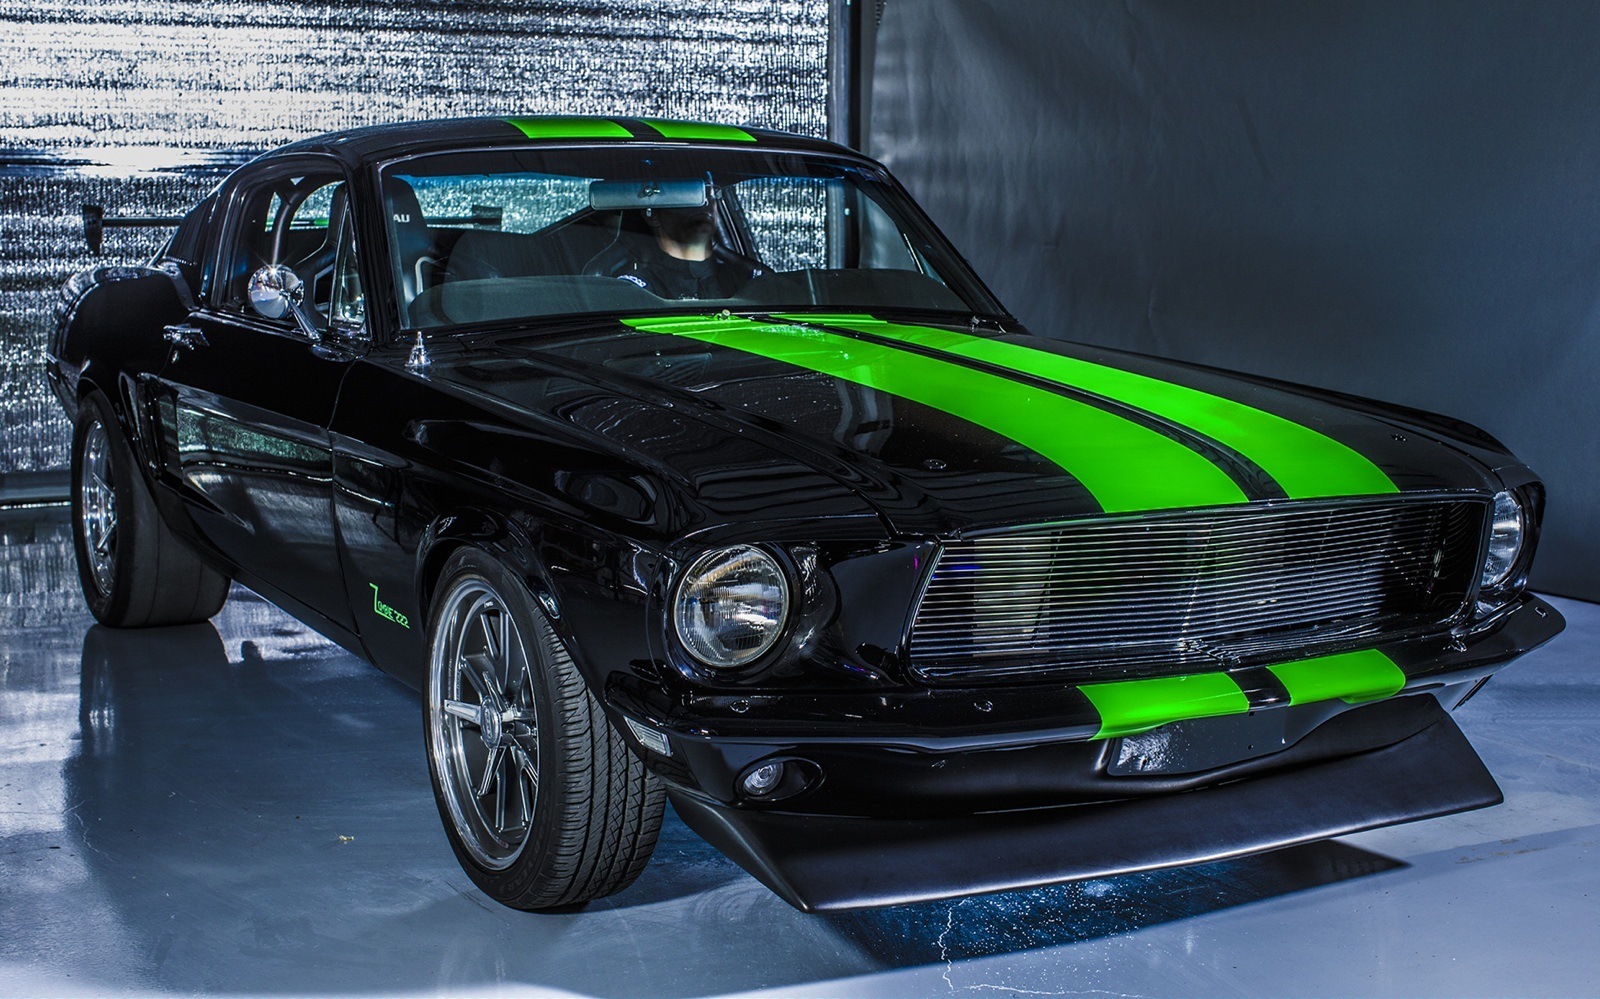 Vintage Electric Mustang Bleeds Torque And Hits 174 Mph